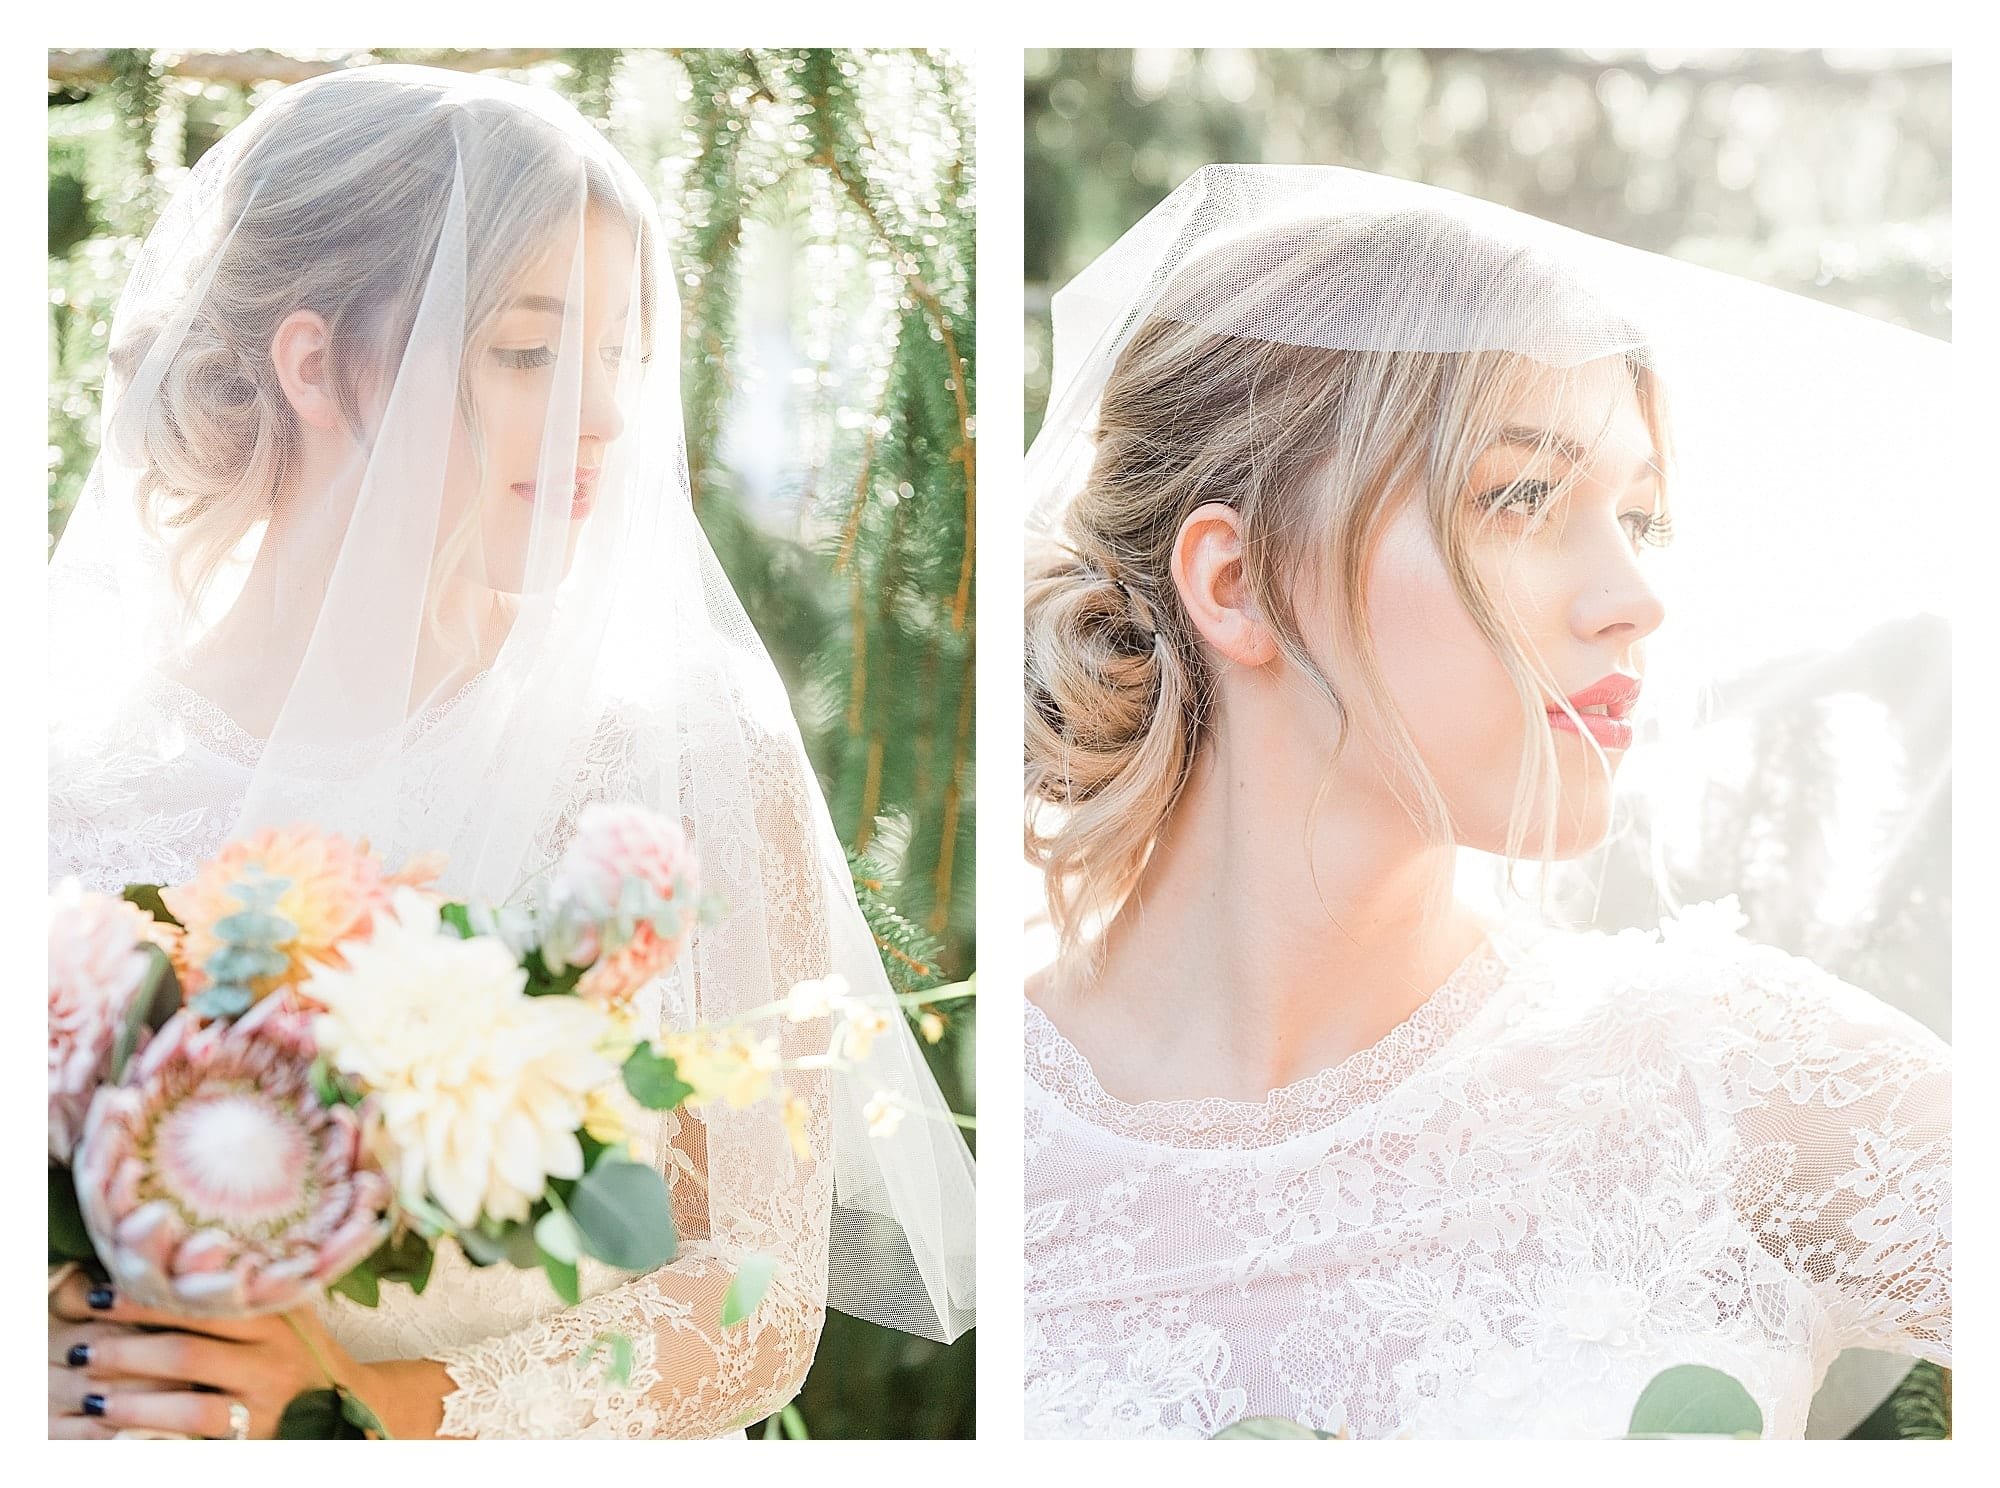 Bride wearing two piece white lace wedding dress and white veil holding peach, pink and yellow themed wedding bouquet